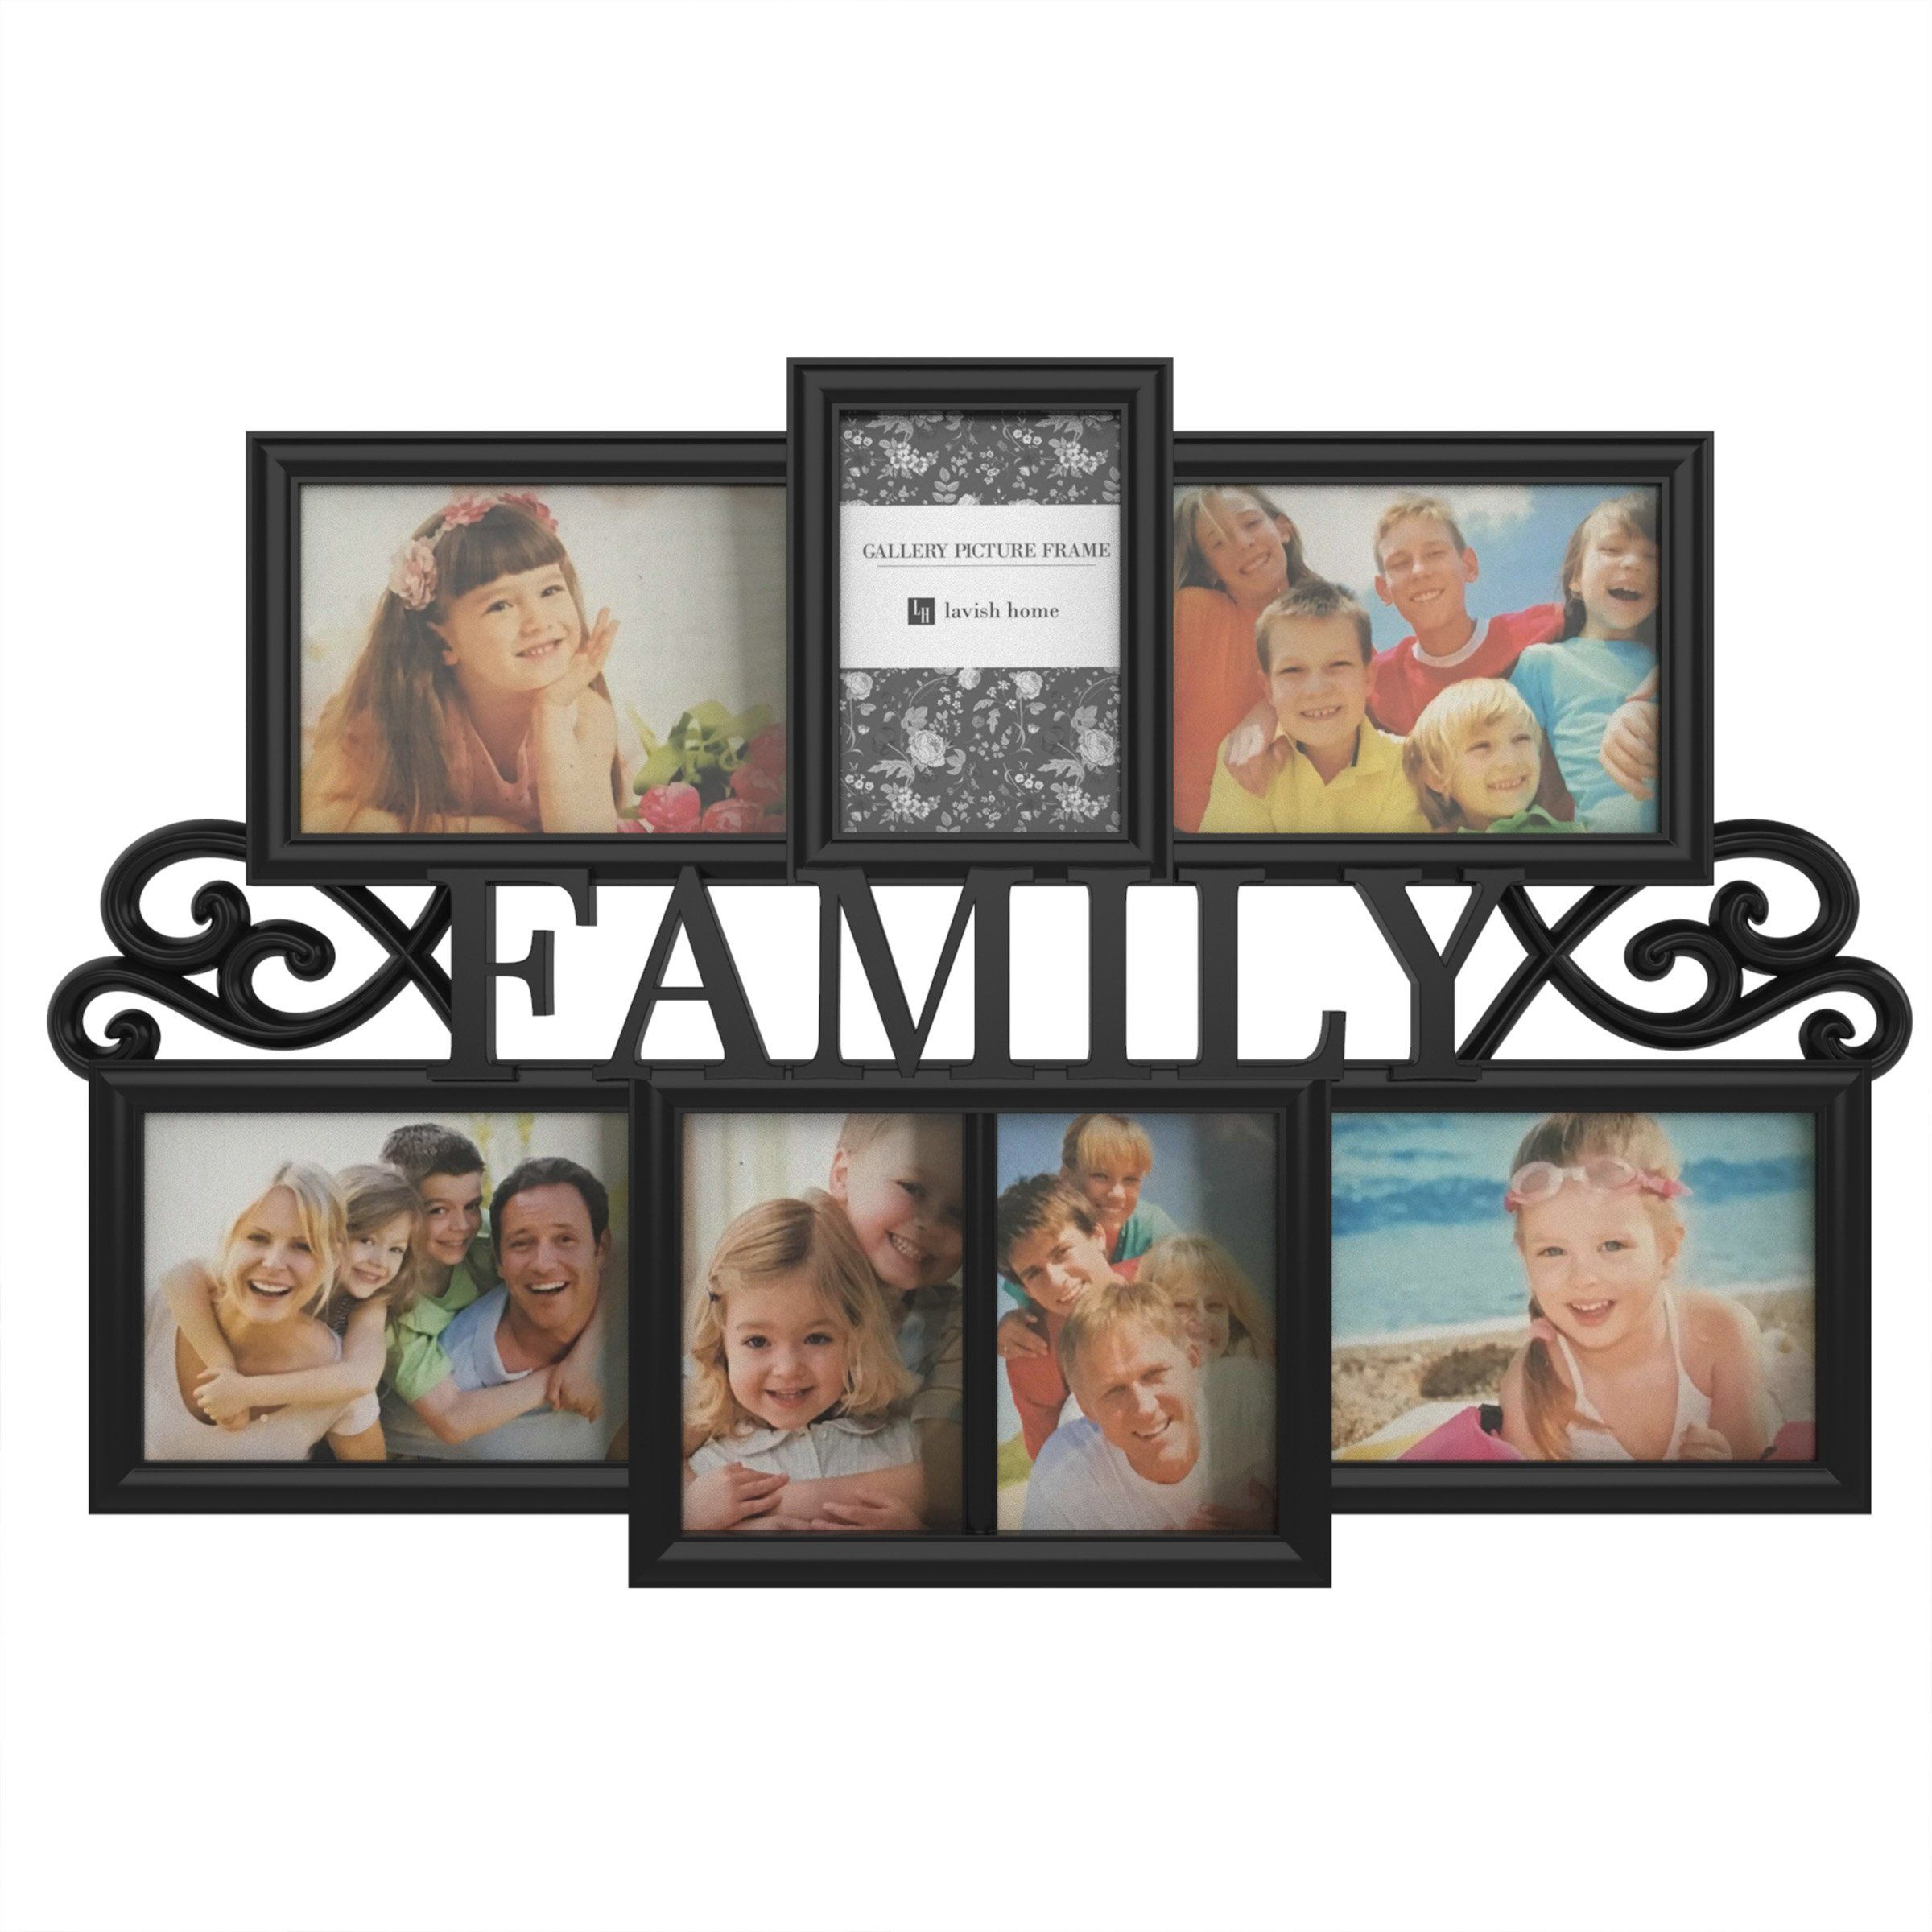 Family Collage Picture Frame With 7 Openings For Three 4x6 And Four 5x In 2021 Family Picture Collages Family Collage Collage Picture Frames 4 opening picture frame 4x6